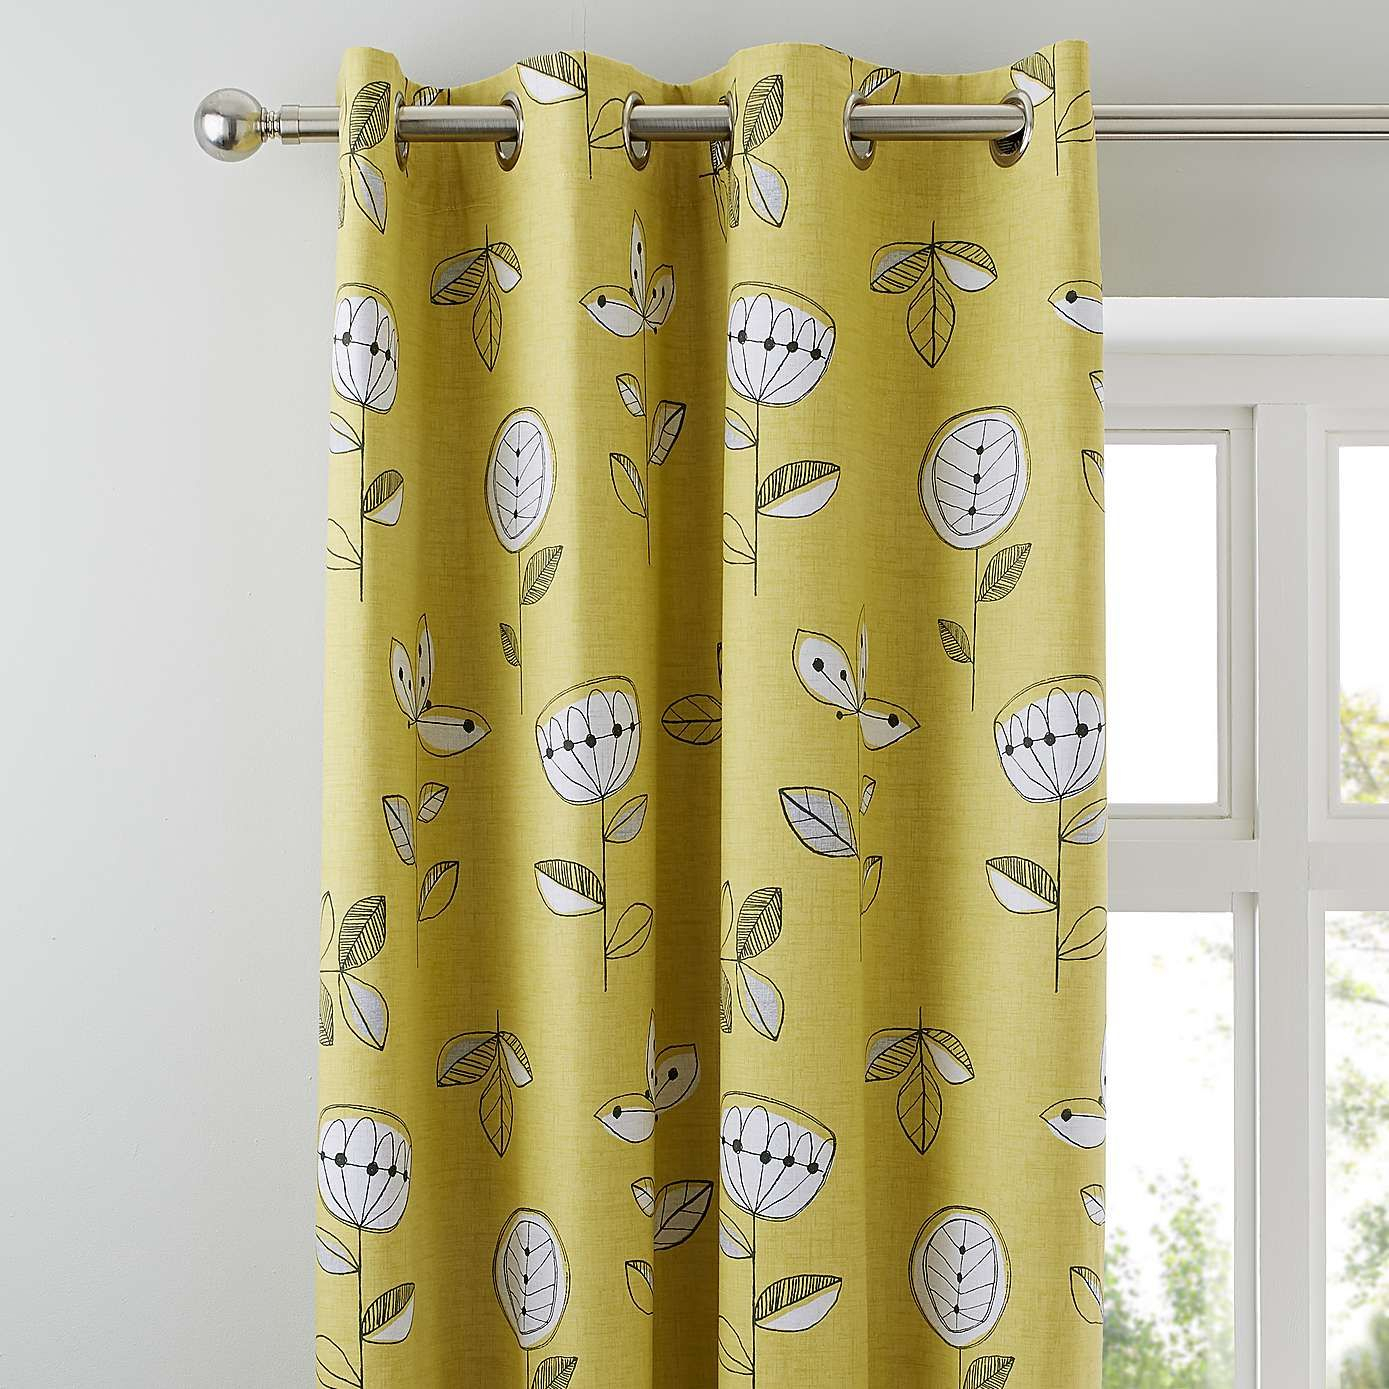 Elements Sunflower Yellow Blackout Eyelet Curtains In 2019 With Traditional Tailored Window Curtains With Embroidered Yellow Sunflowers (View 20 of 20)